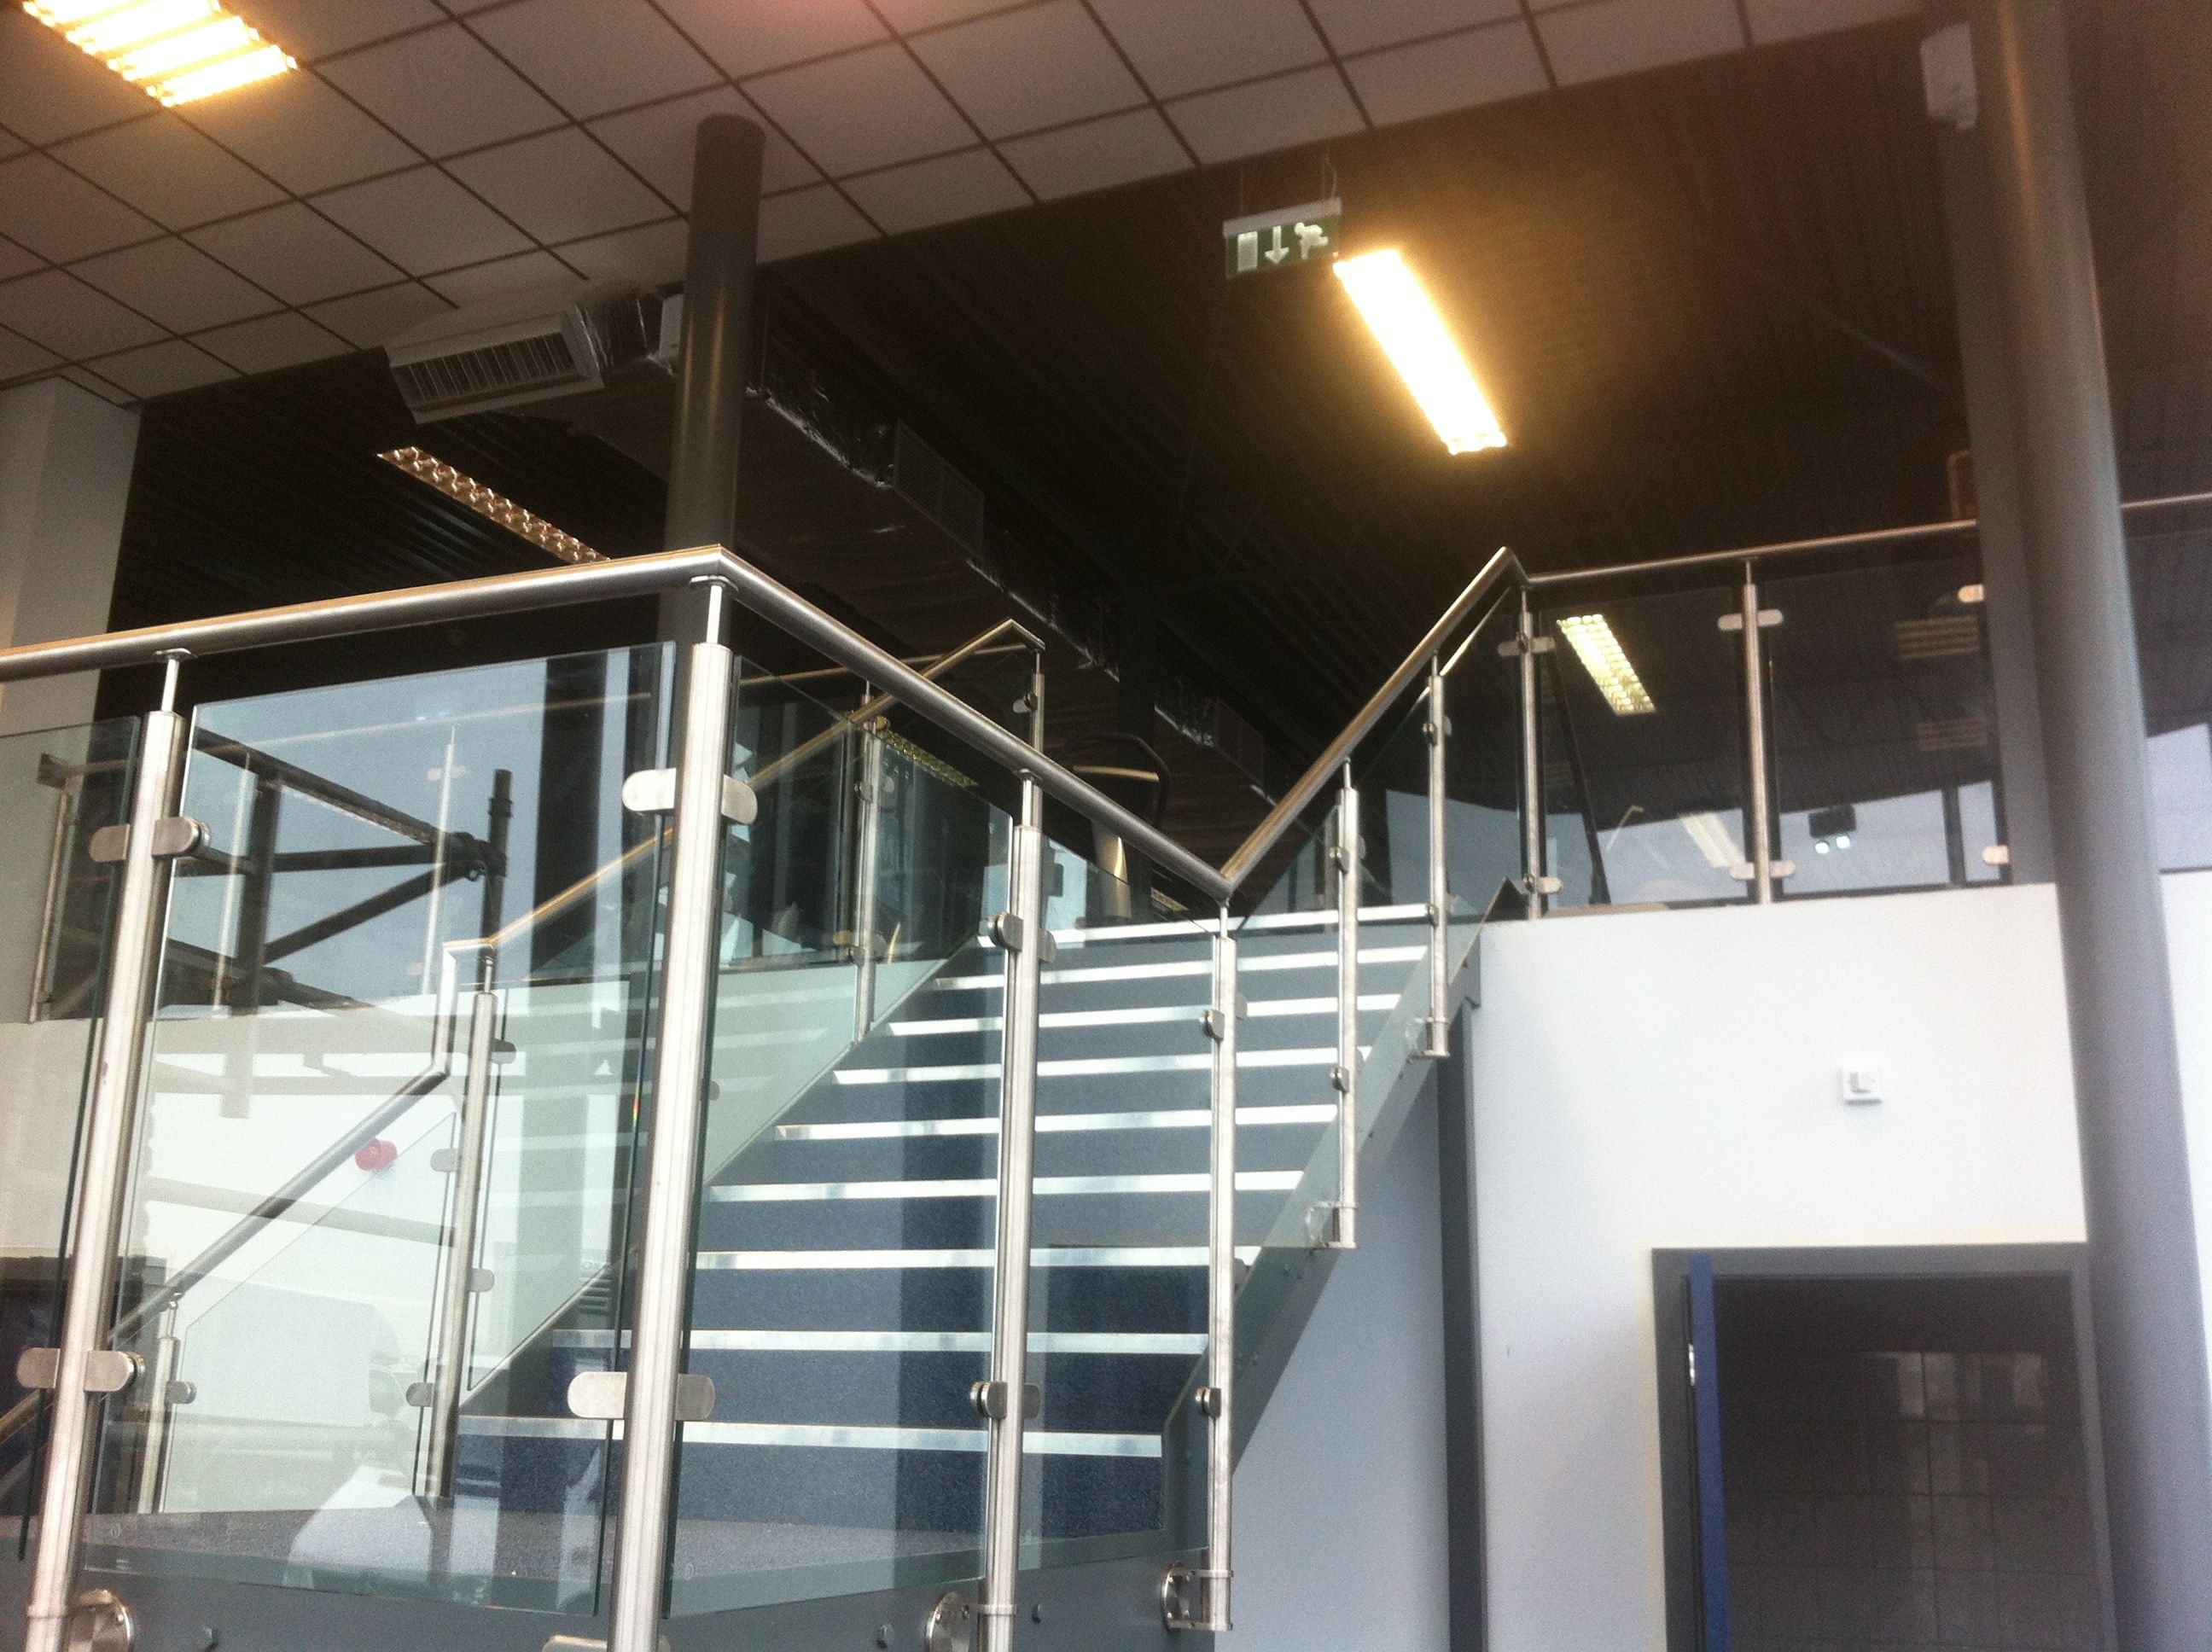 Steel Staircase With Stainless Steel Balustrade At Megagym In Birmingham